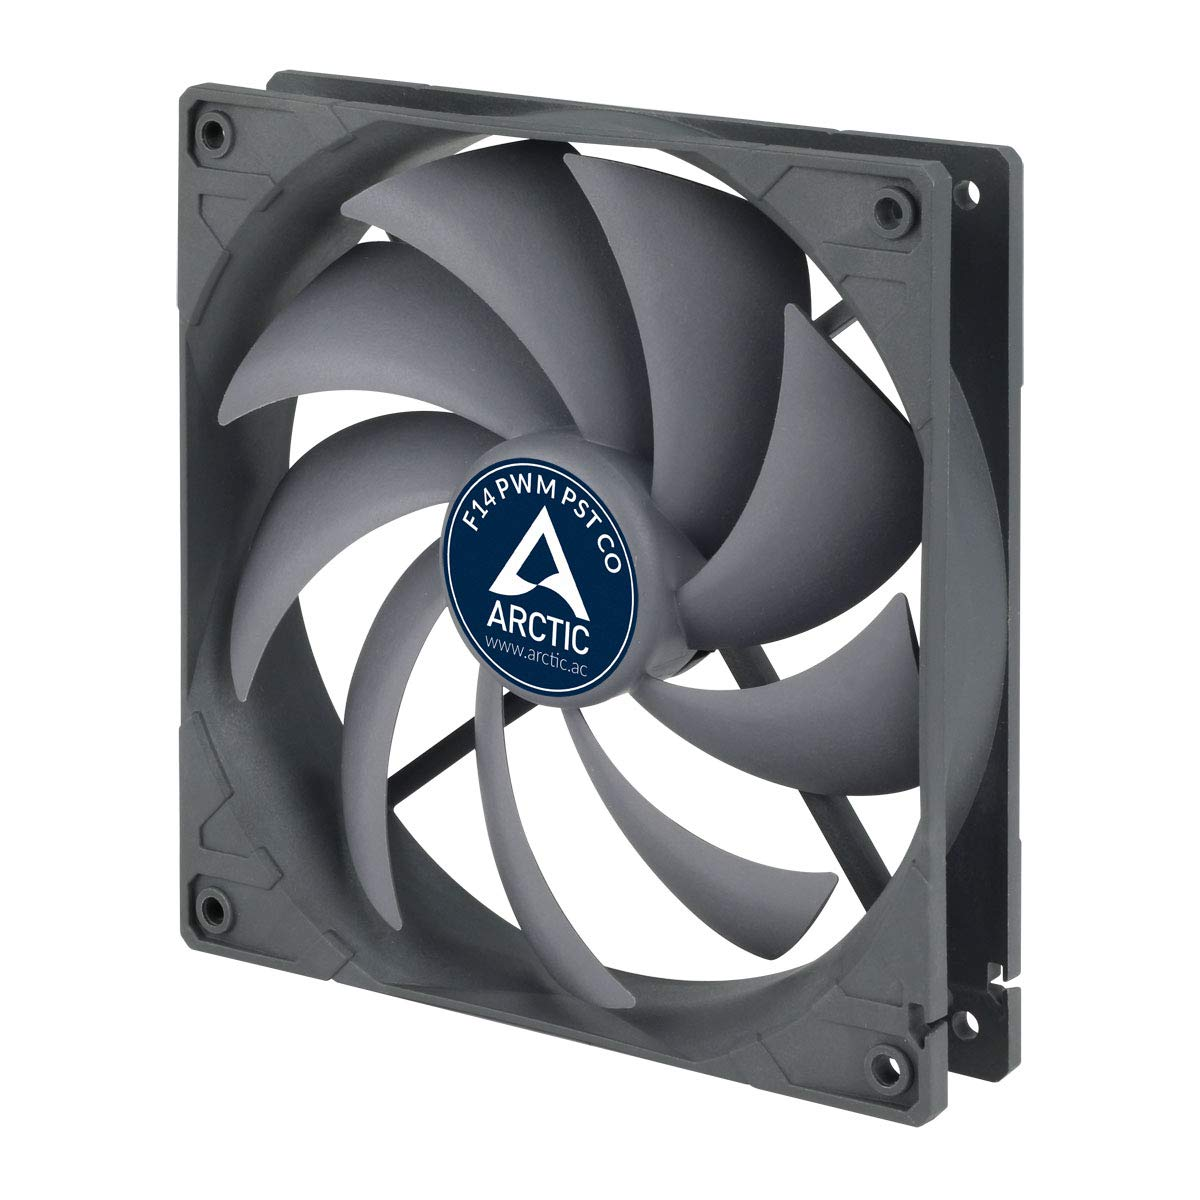 ARCTIC F14 PWM PST CO, 140 mm High Performance PWM PST Fan for Continuous Operation, Case Fan with Patented PWM Sharing Technology (PST)